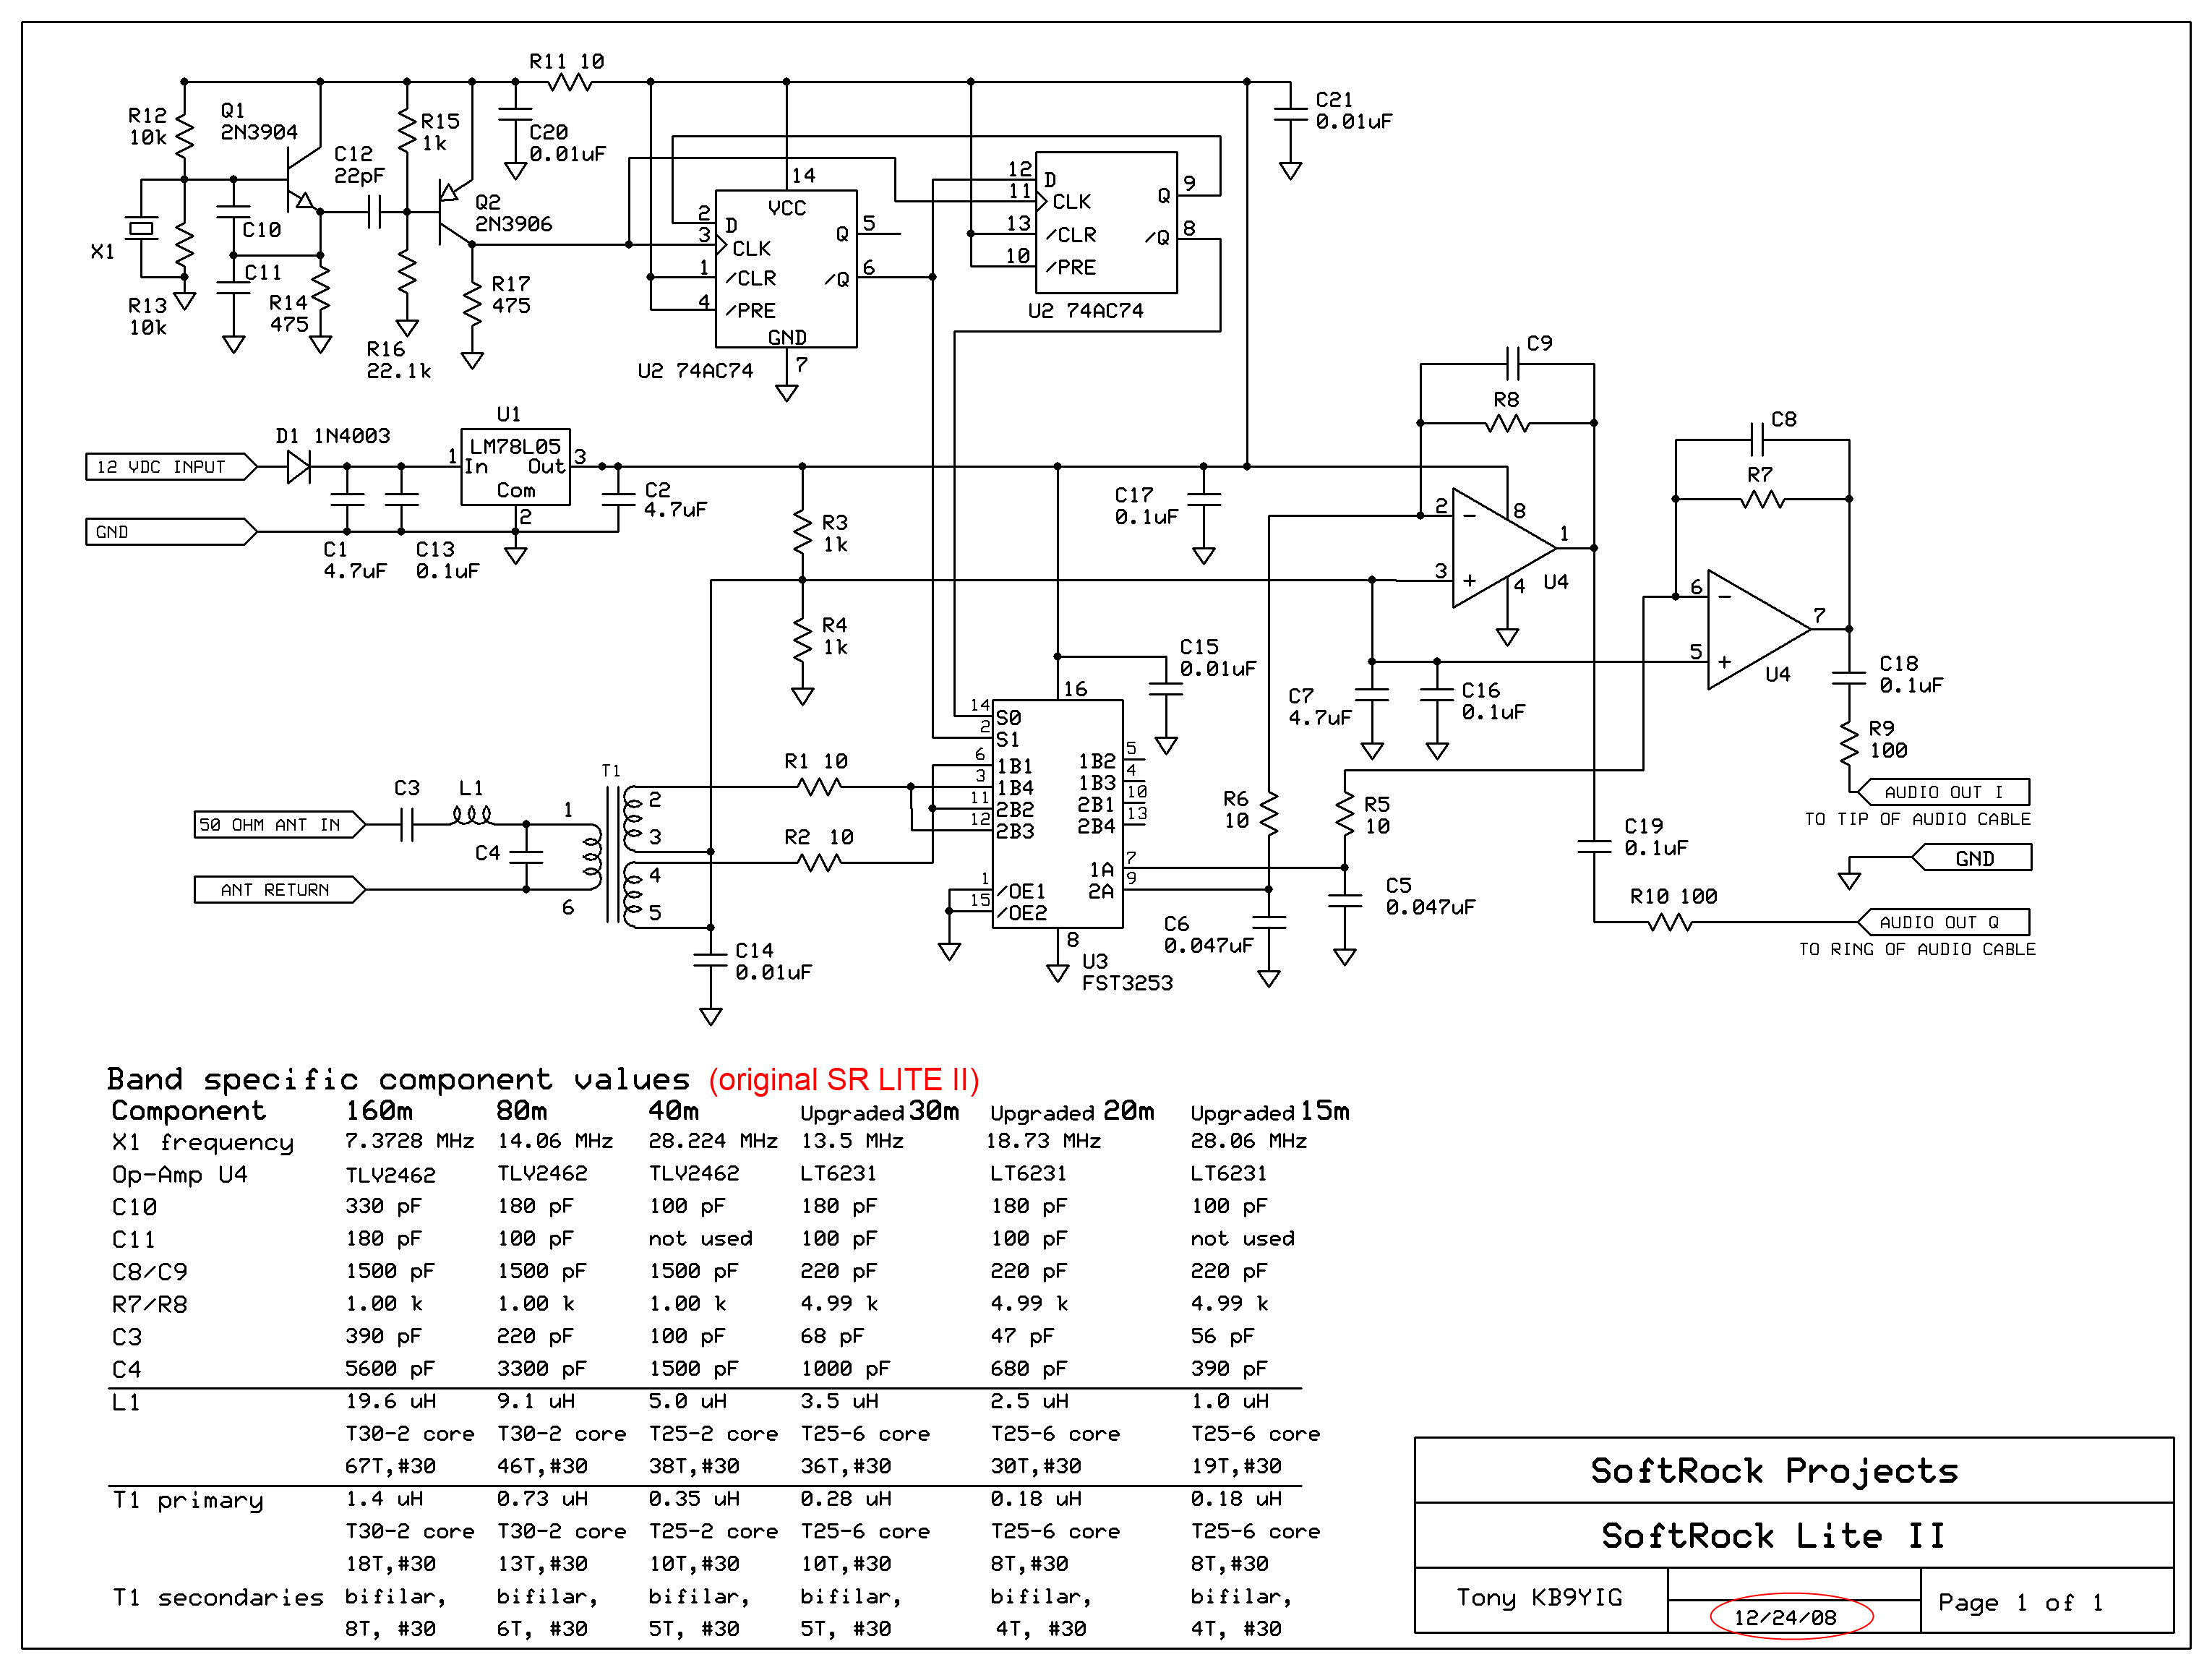 Wb5rvz Home Softrock Lite Ii Rx E Meter Circuit Diagram These Versions Were Described In The Common Schematic